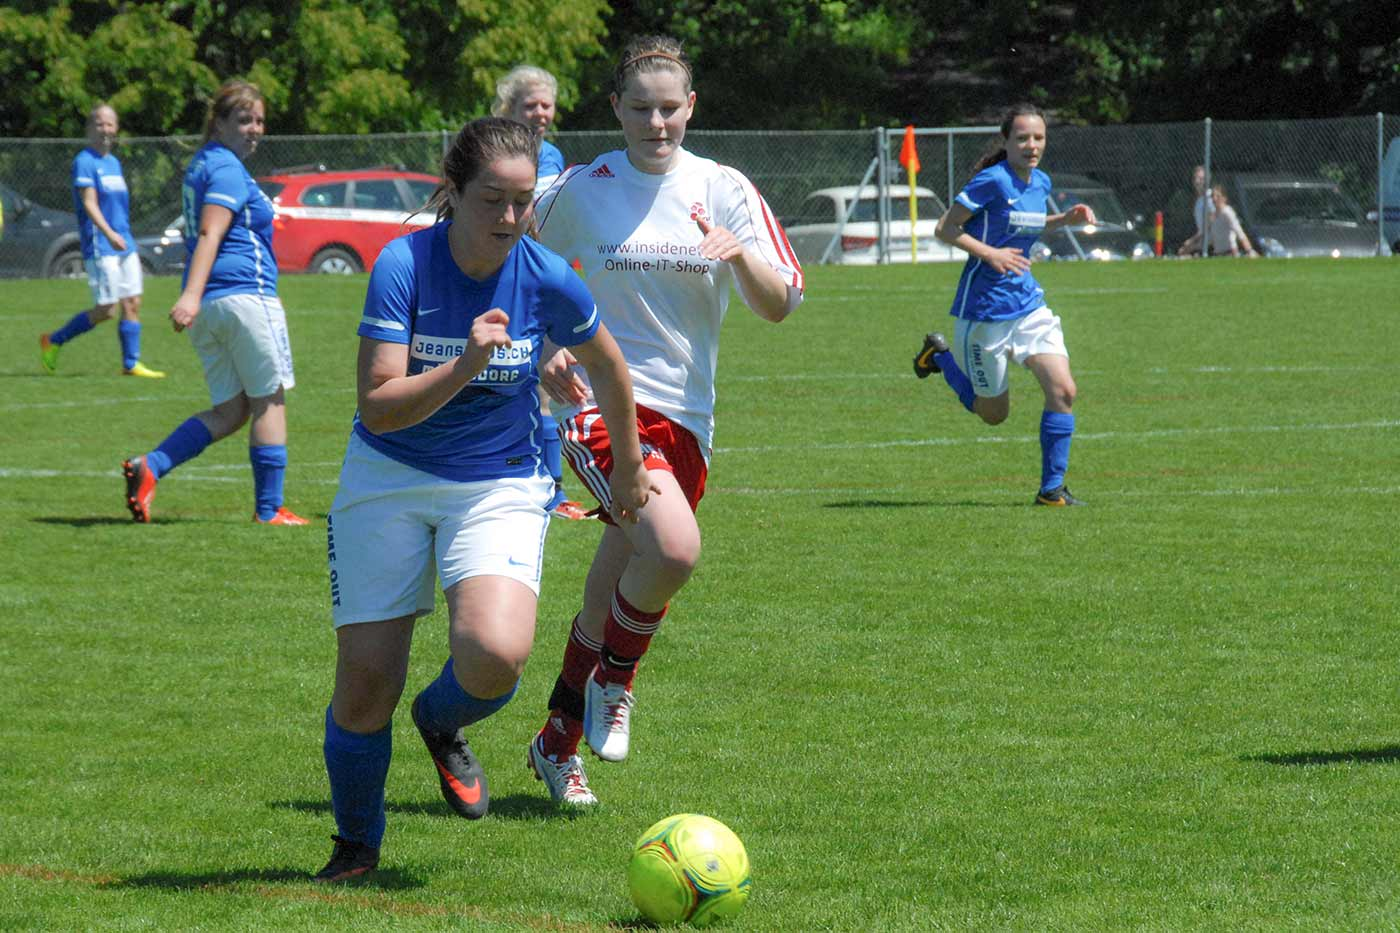 FCM-Slider Frauenfussball